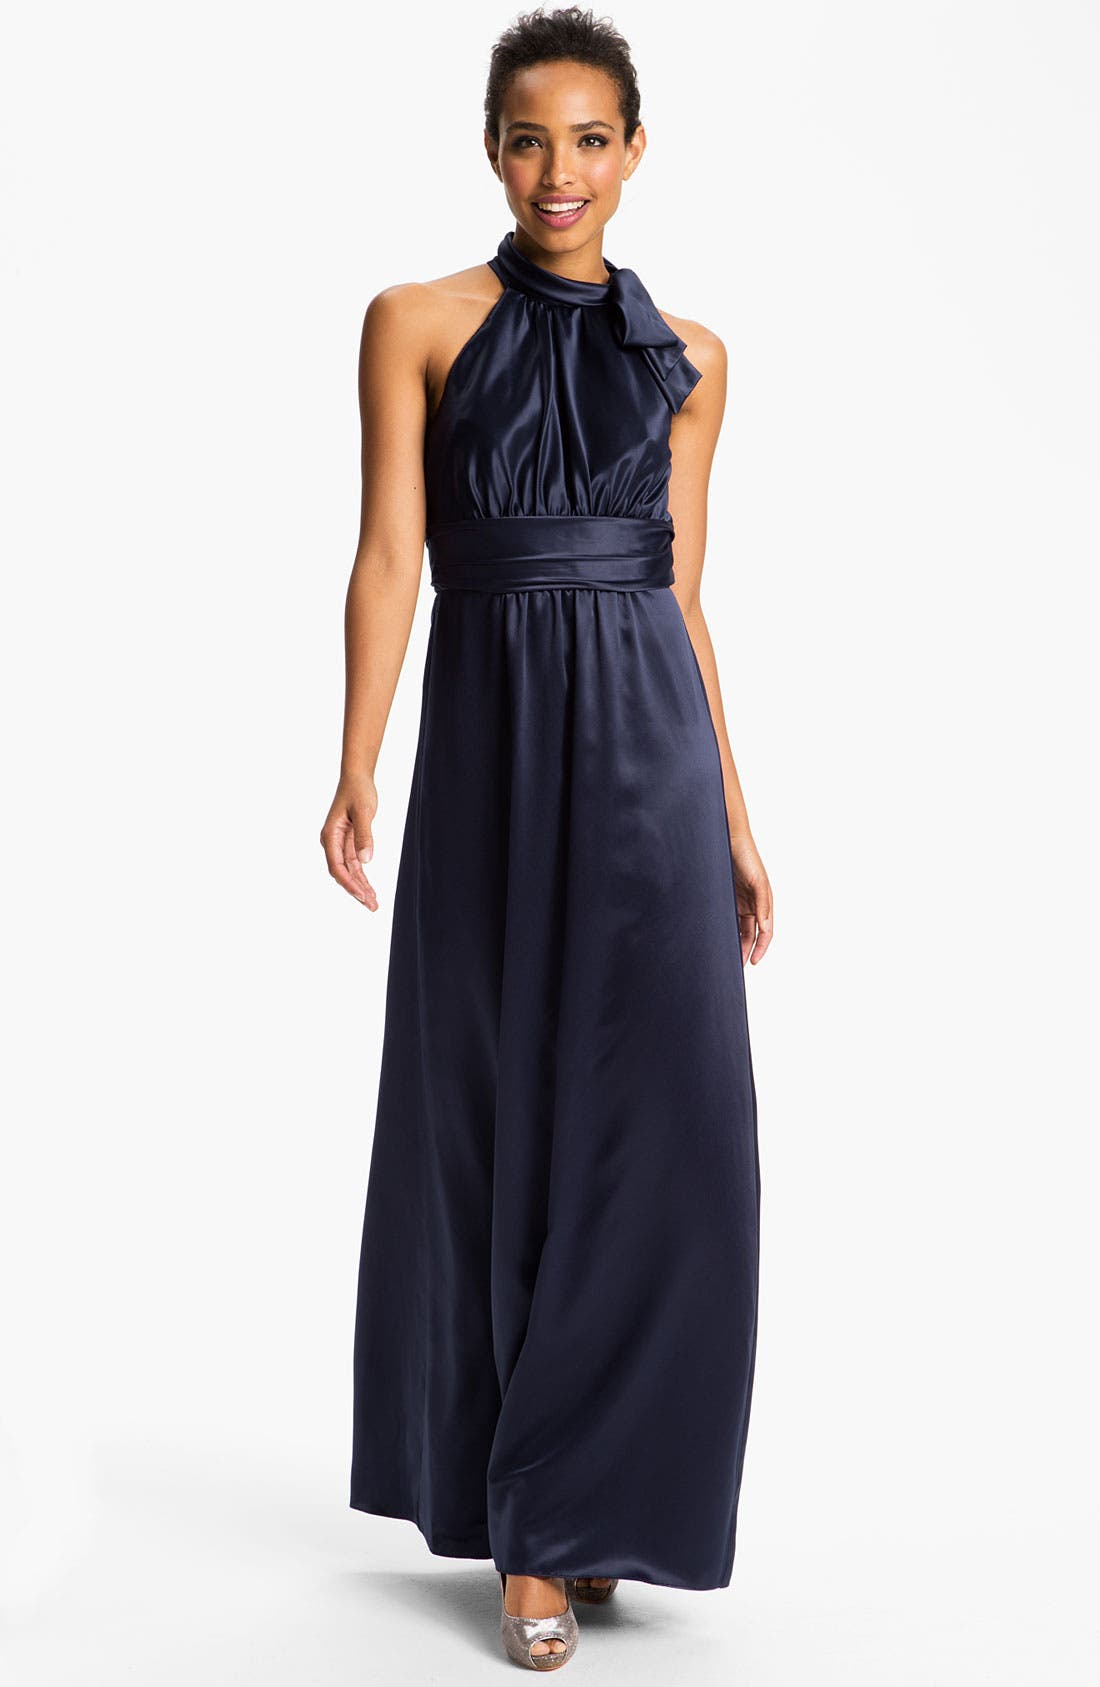 Alternate Image 1 Selected - Amsale Tie Neck Satin A-Line Gown